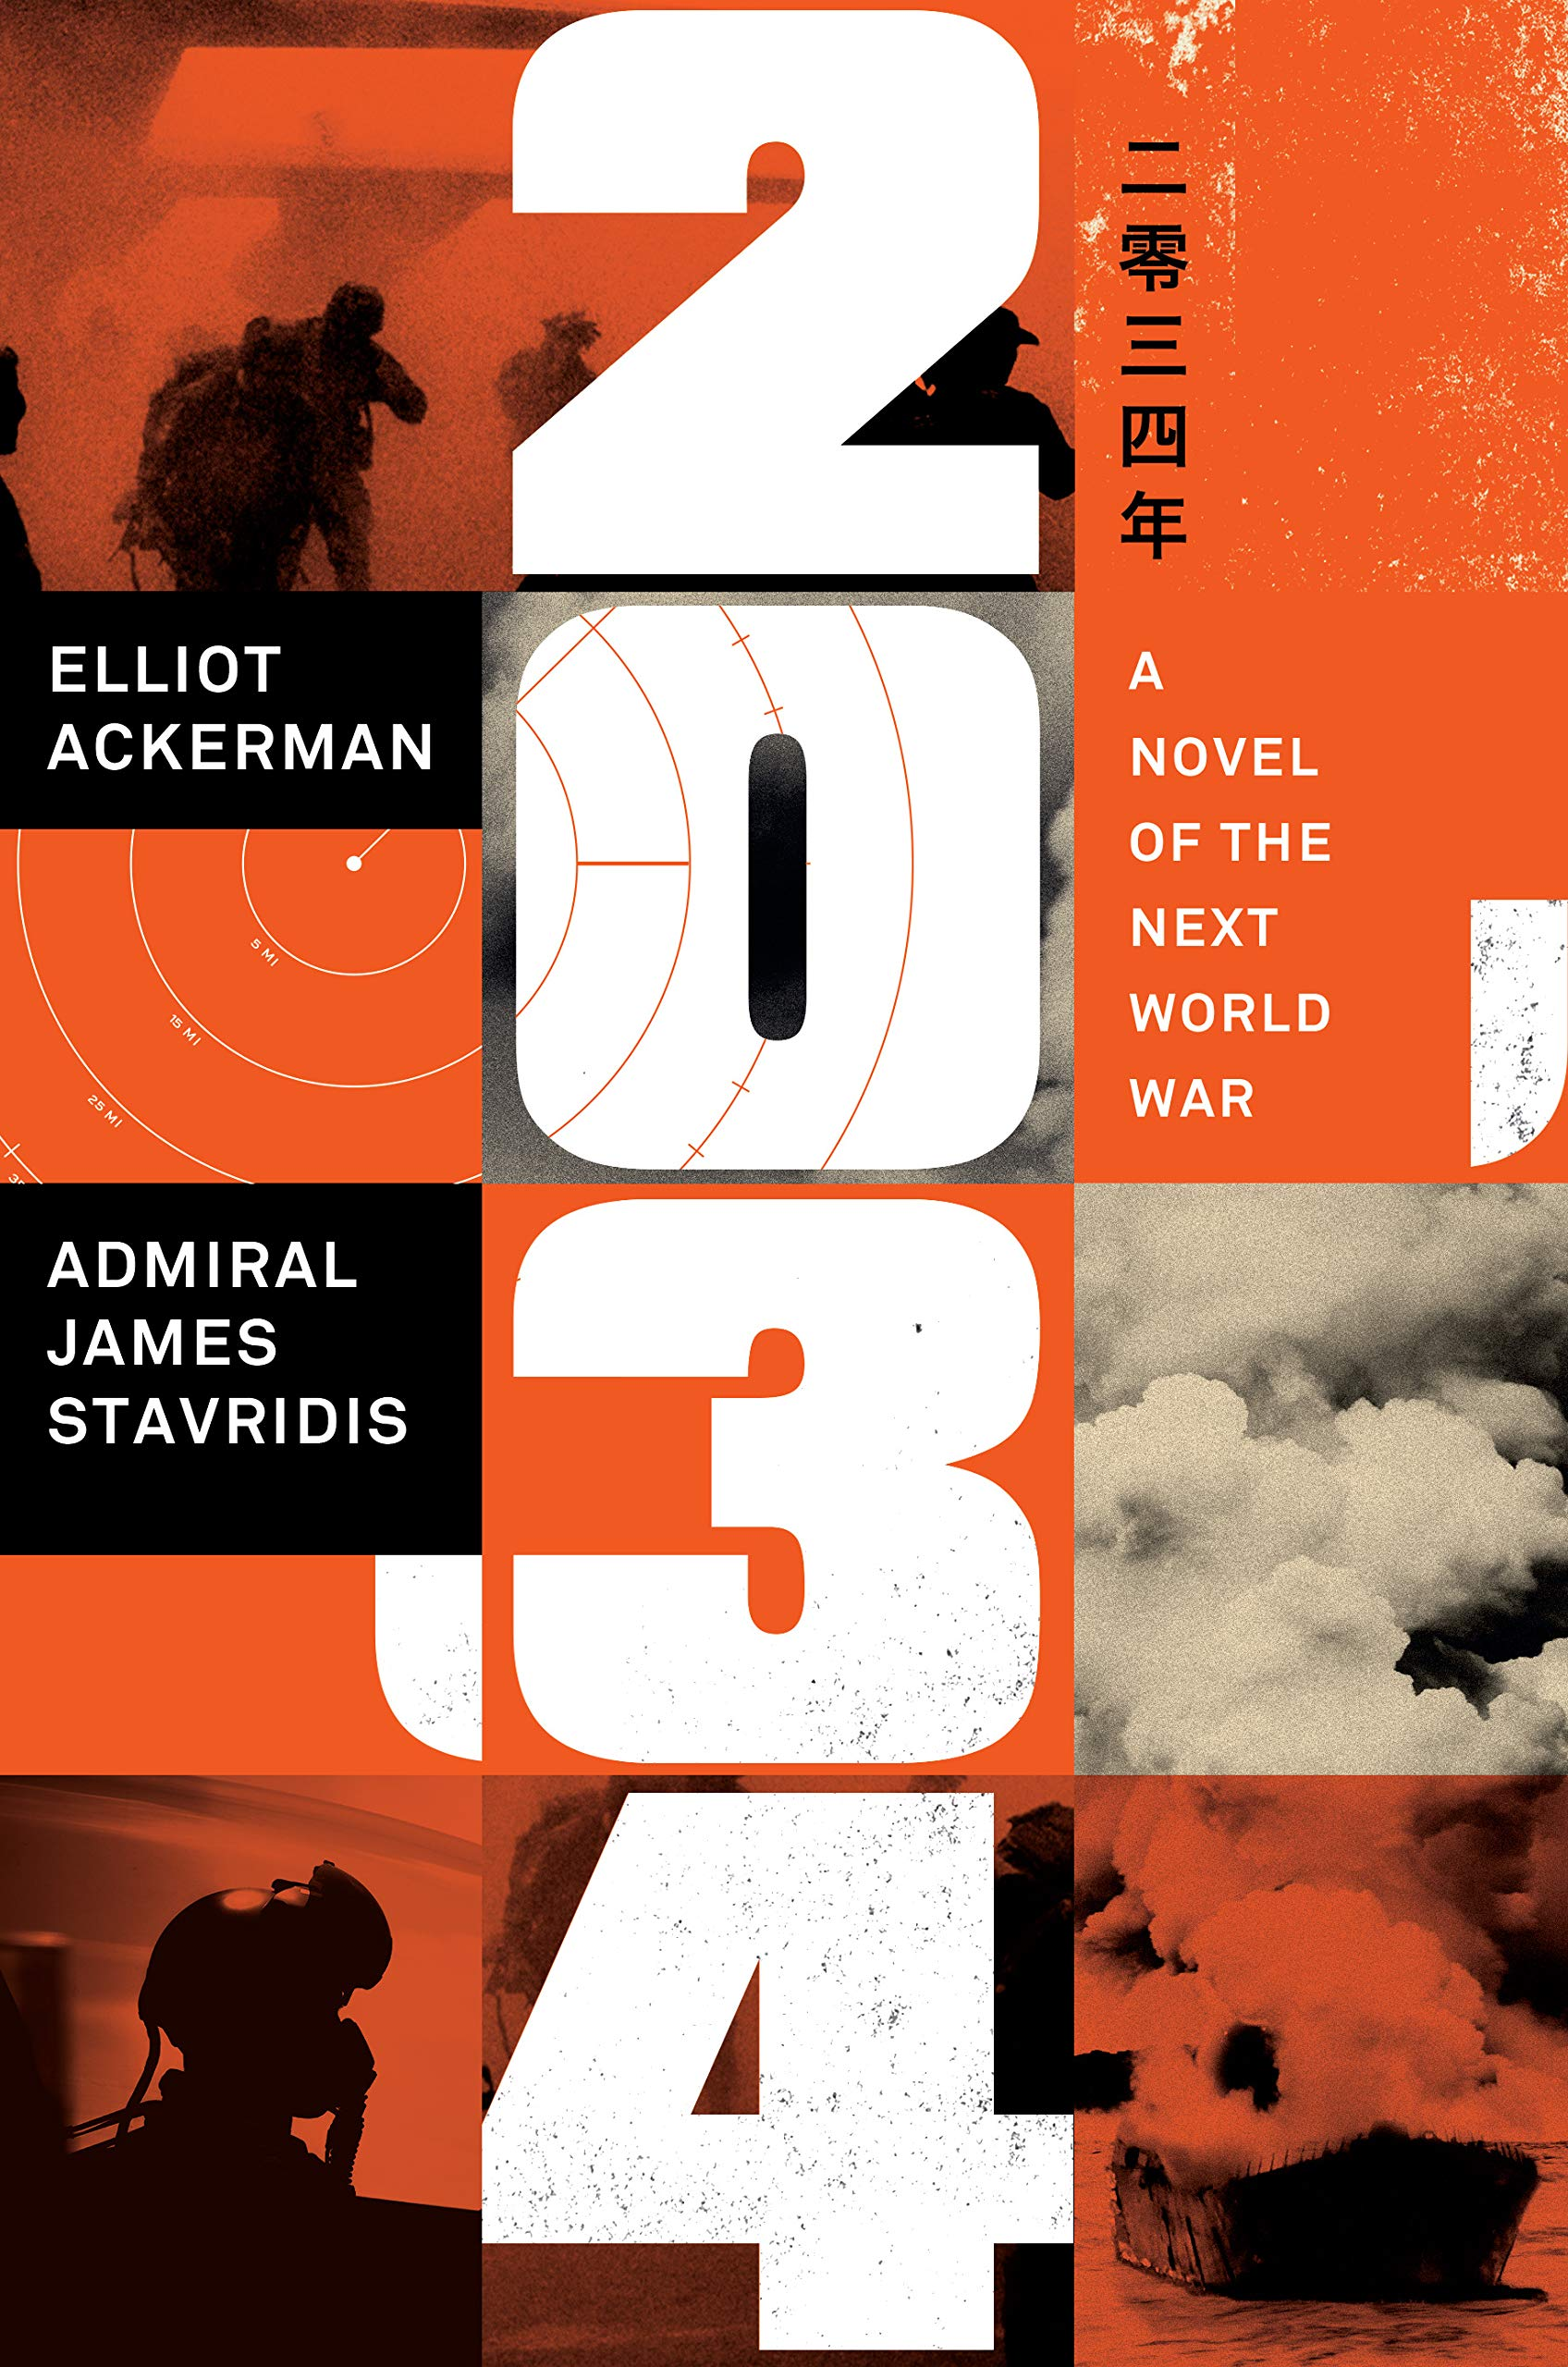 2034: A Novel of the Next World War by Elliot Ackerman and ADM Stavridis, (published on March 10, 2021)